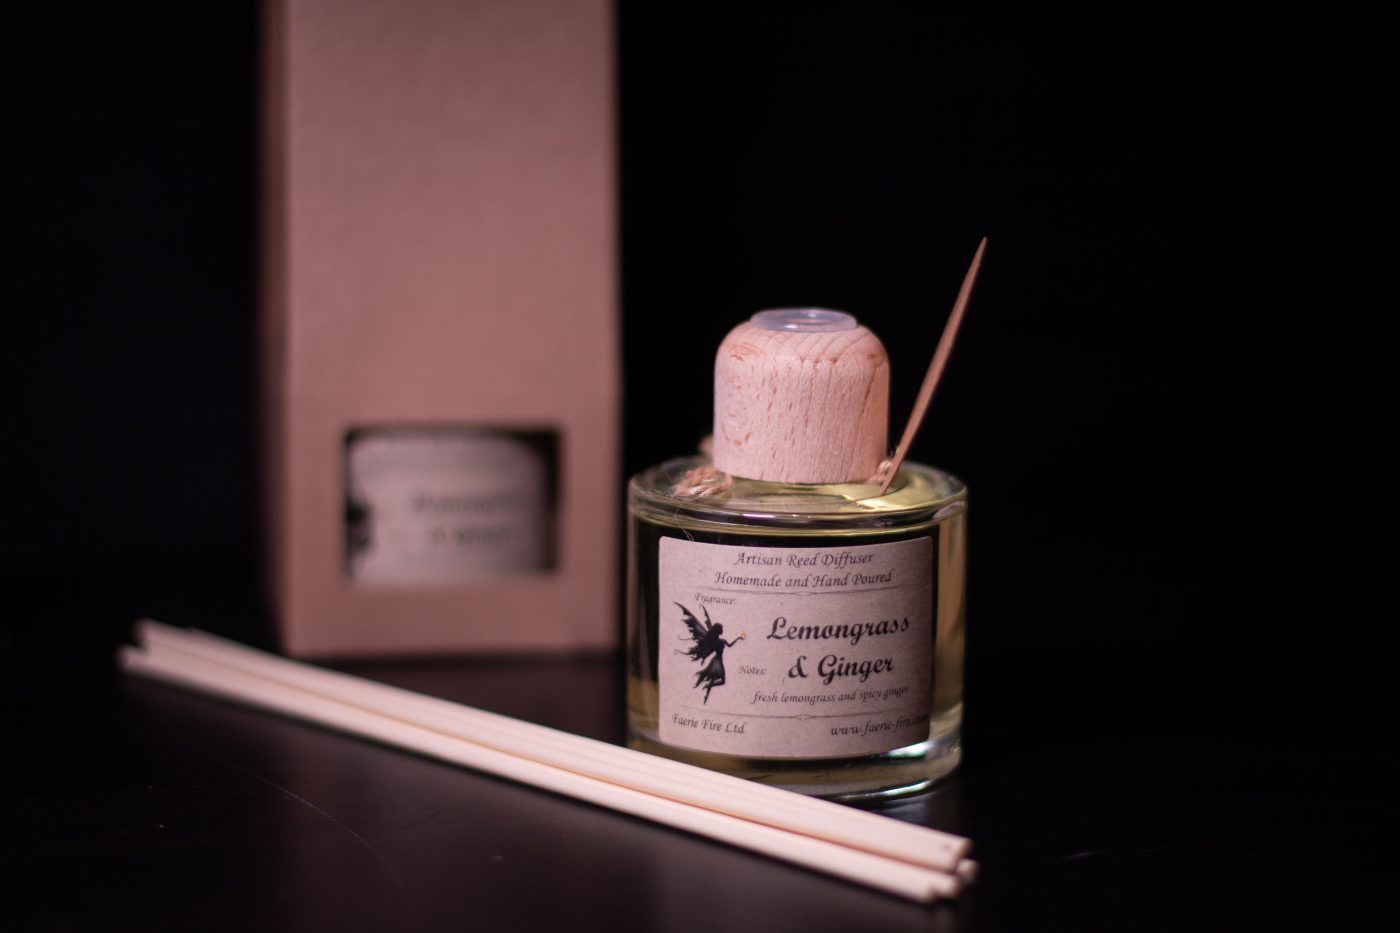 Lemongrass and Ginger Reed Diffuser scaled